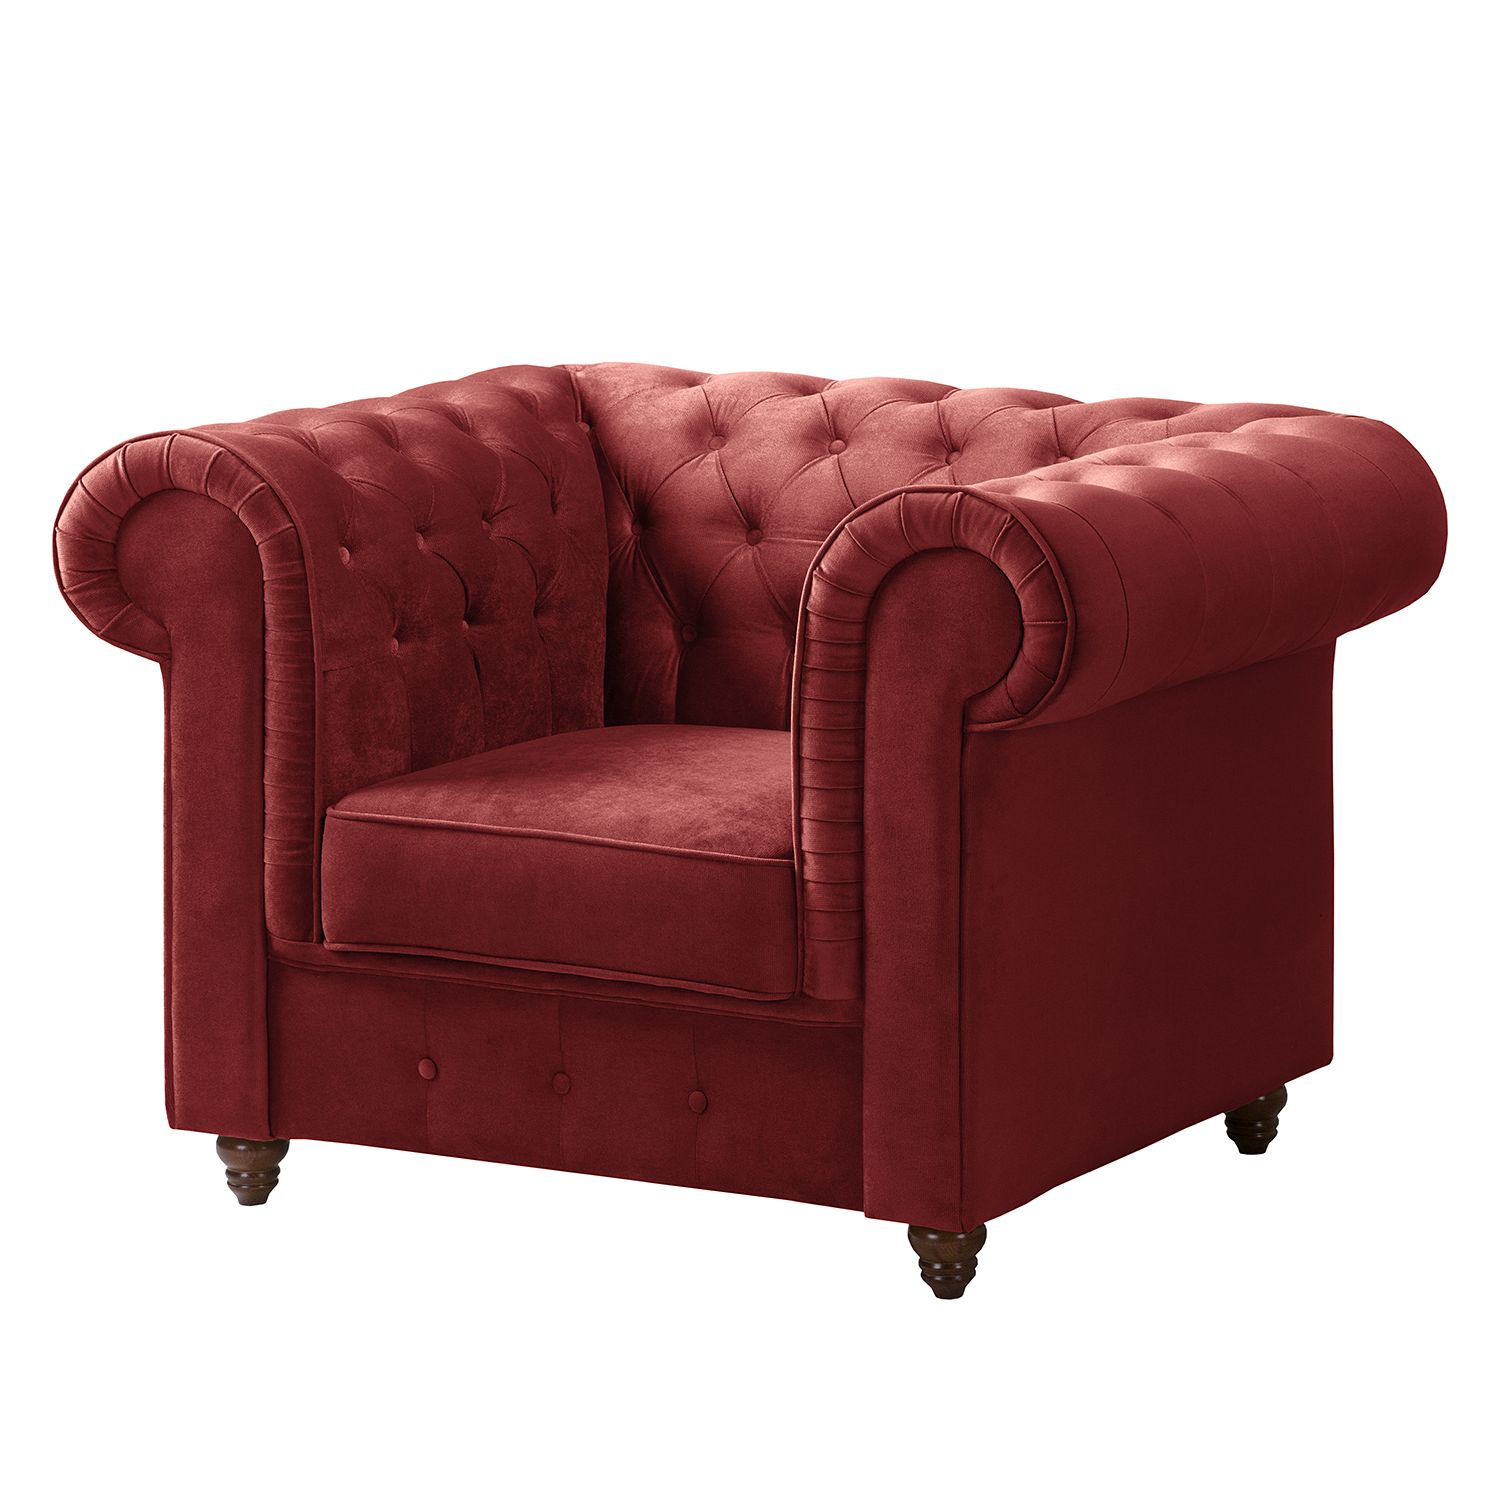 home24 Chesterfield Sessel Pintano | Wohnzimmer > Sessel > Chesterfield Sessel | Maison Belfort